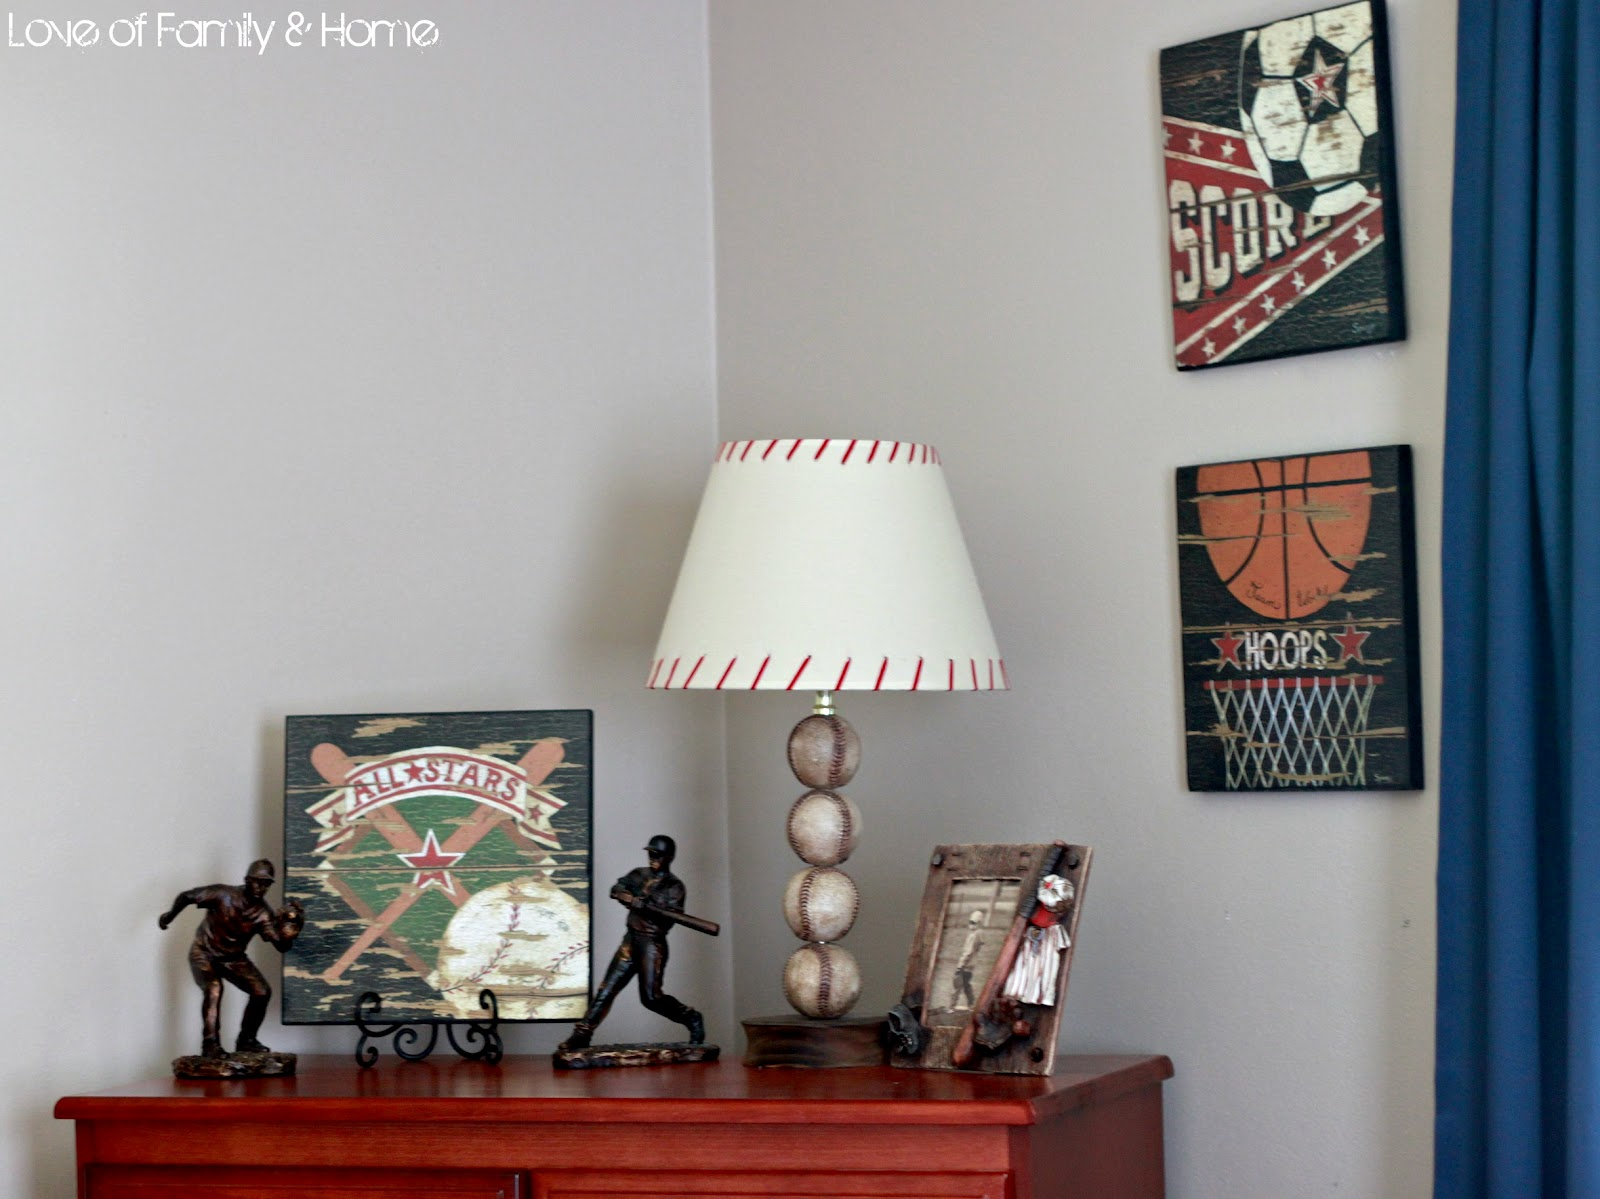 Baseball Bedroom Decor Parkers Room Vintage Baseball Boys Bedroom Love Of Family